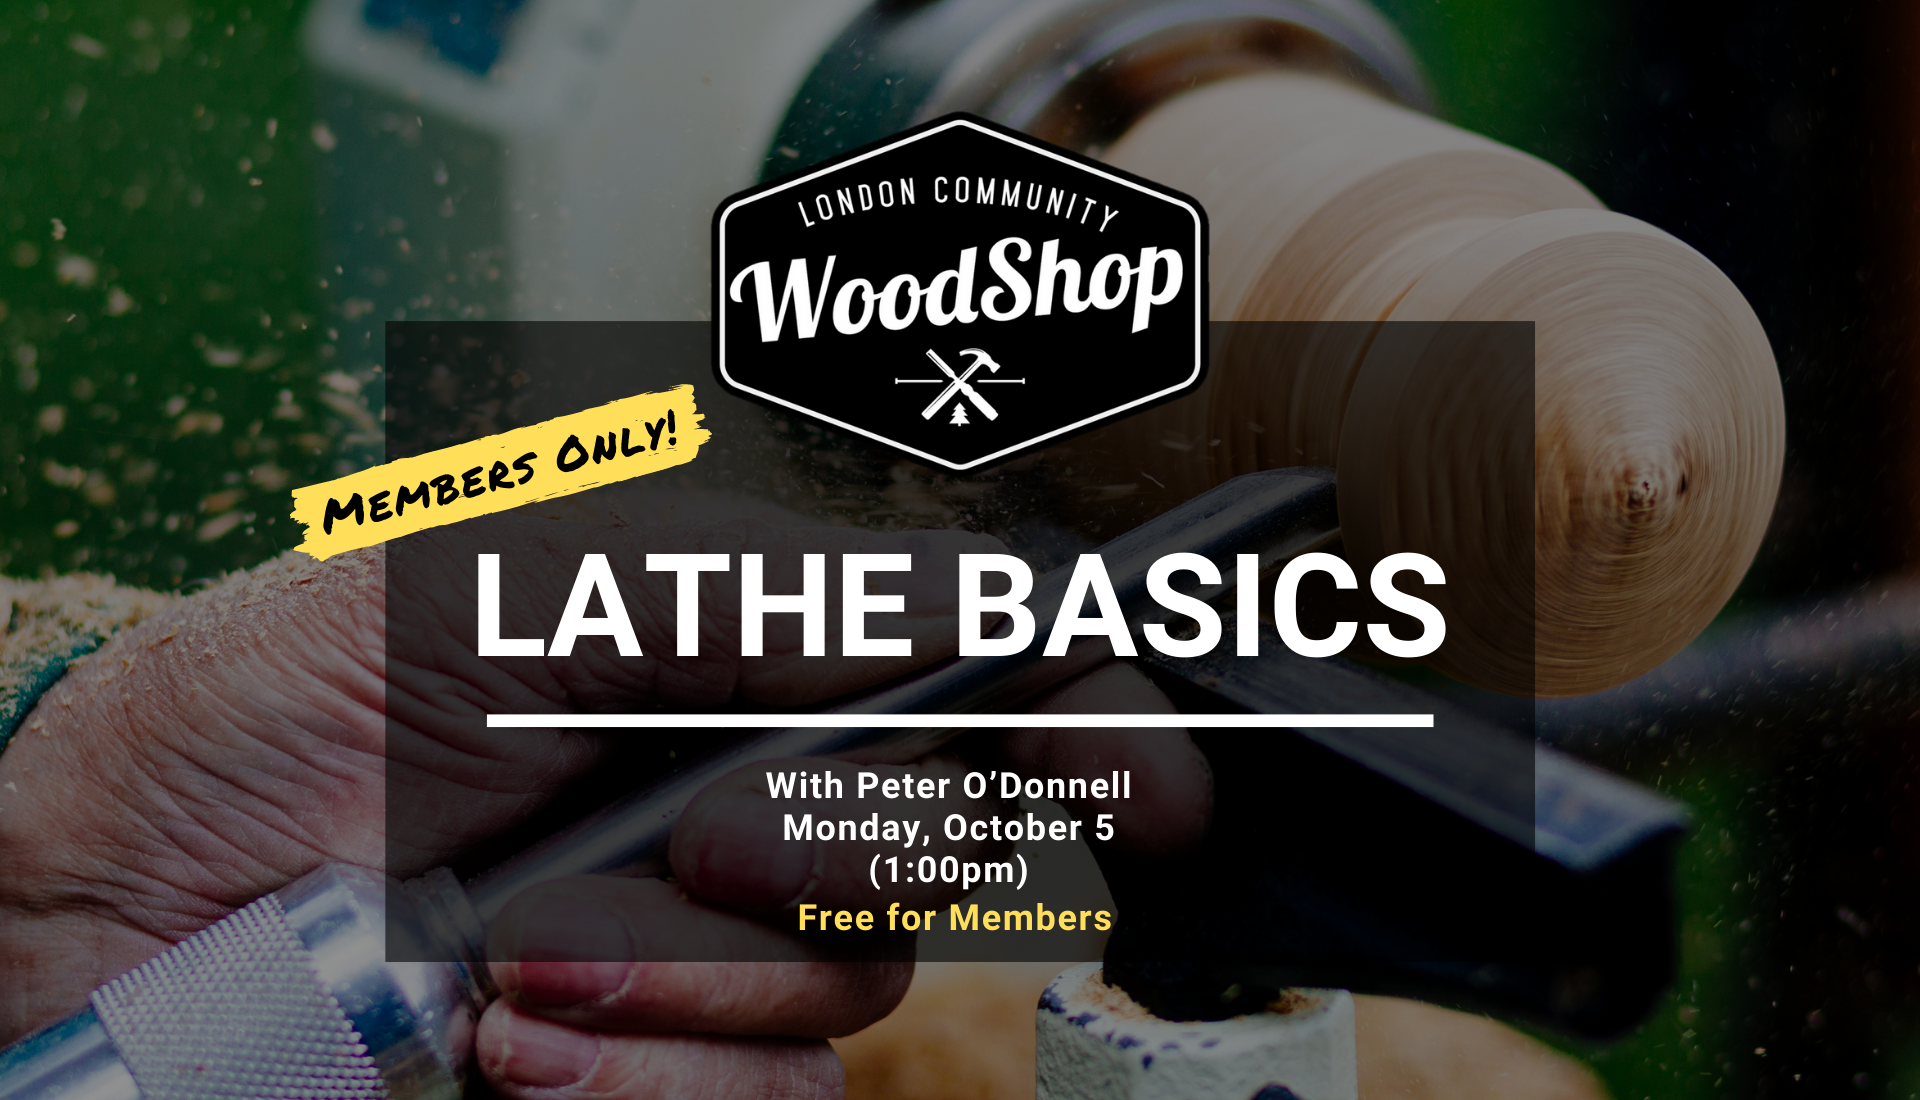 Lathe Basics - Monday, October 5